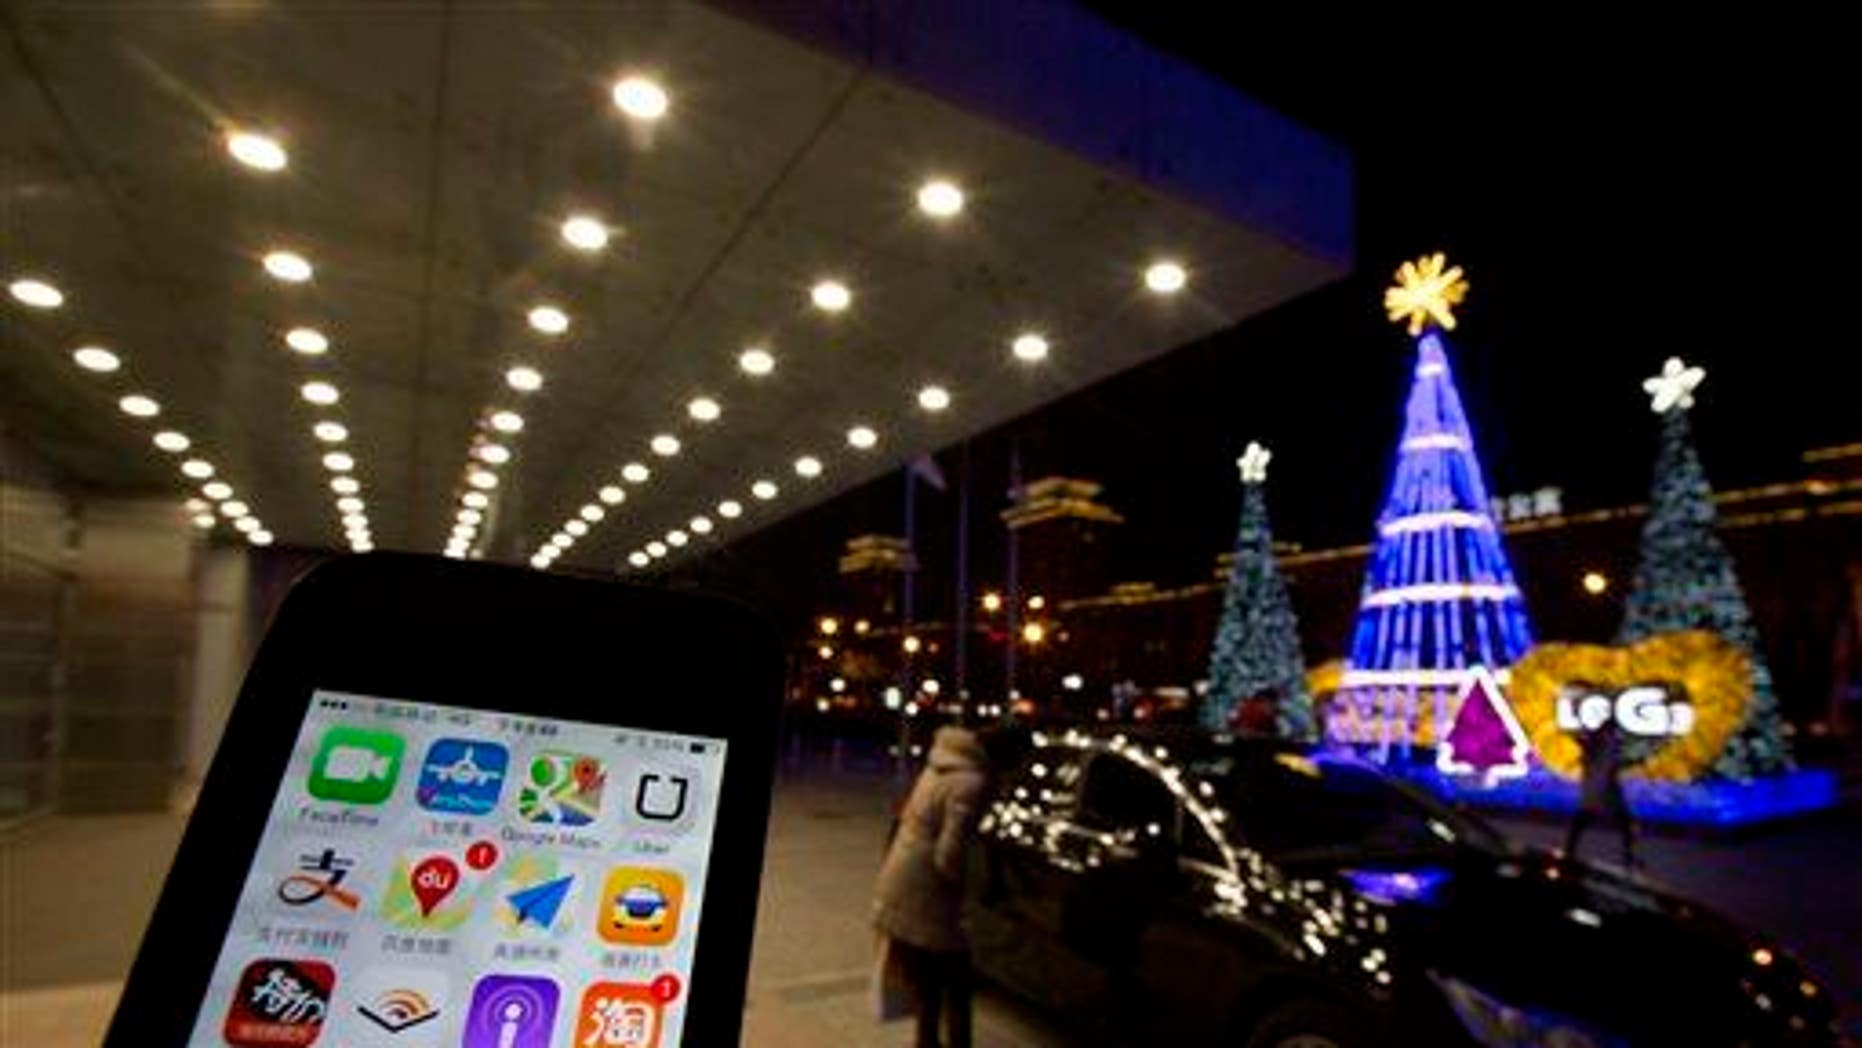 The Uber app is displayed on a phone outside an office building in Beijing, Jan. 9, 2015.